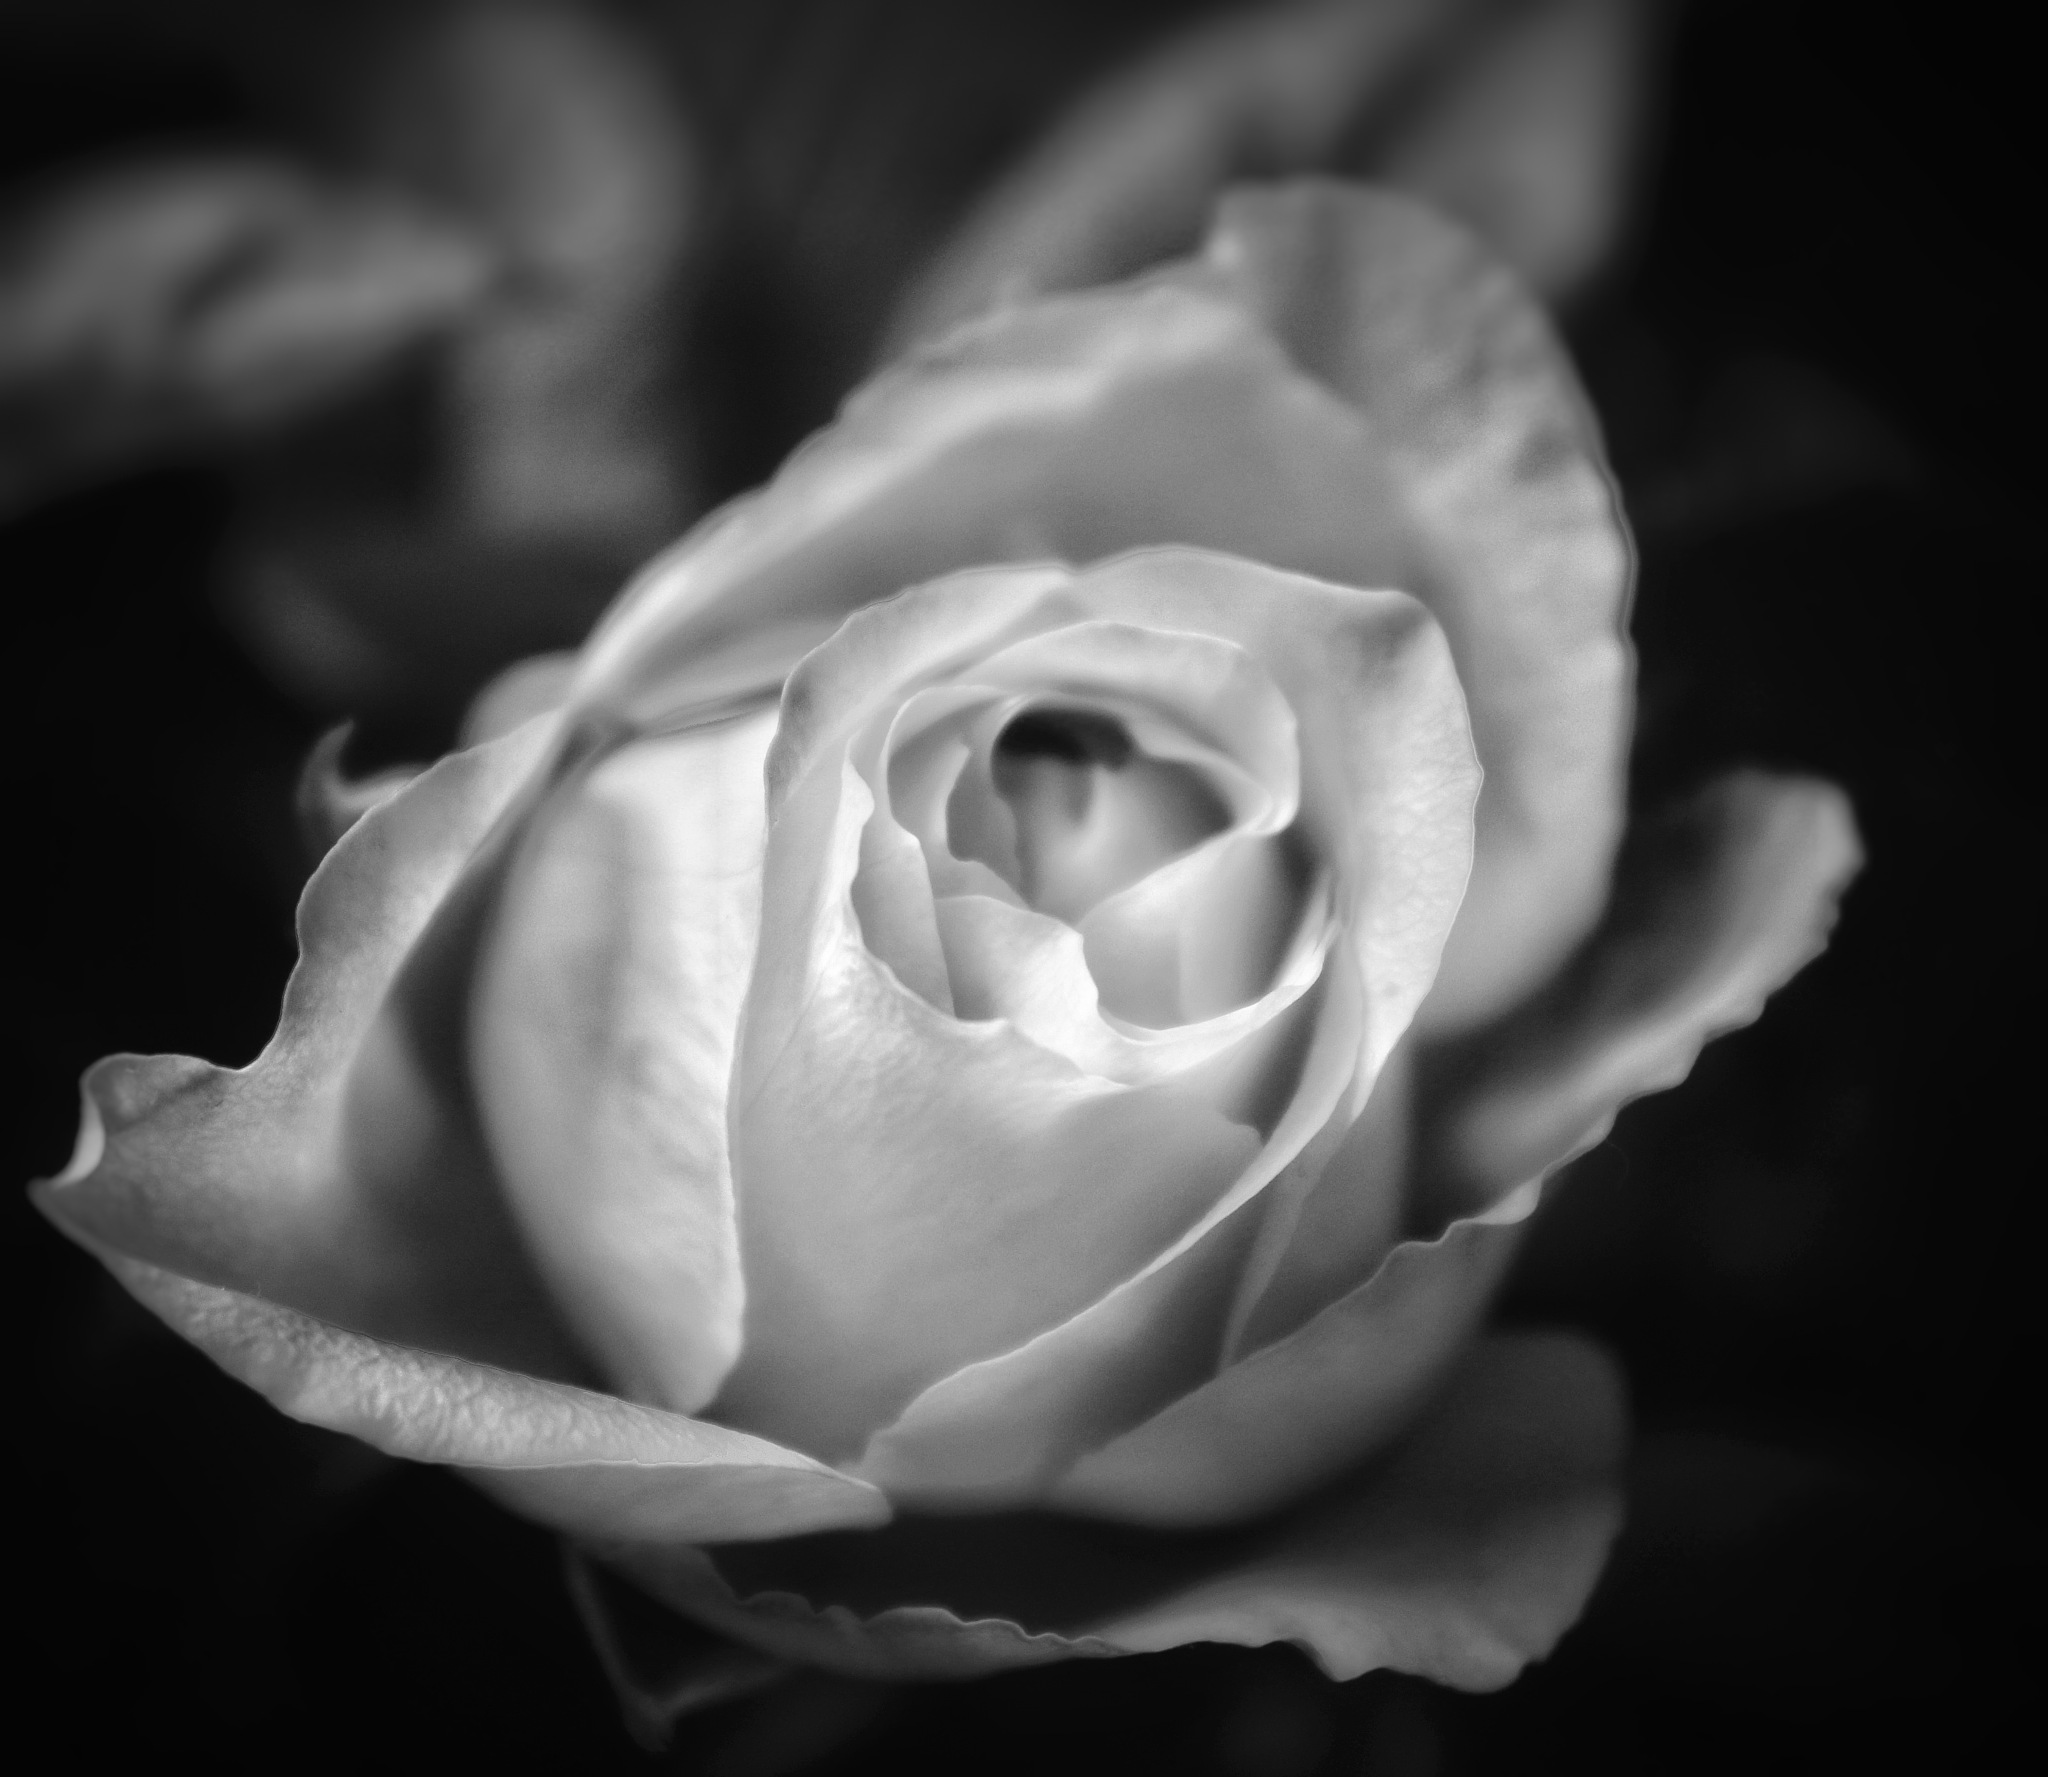 Rose by Annica Josefsson